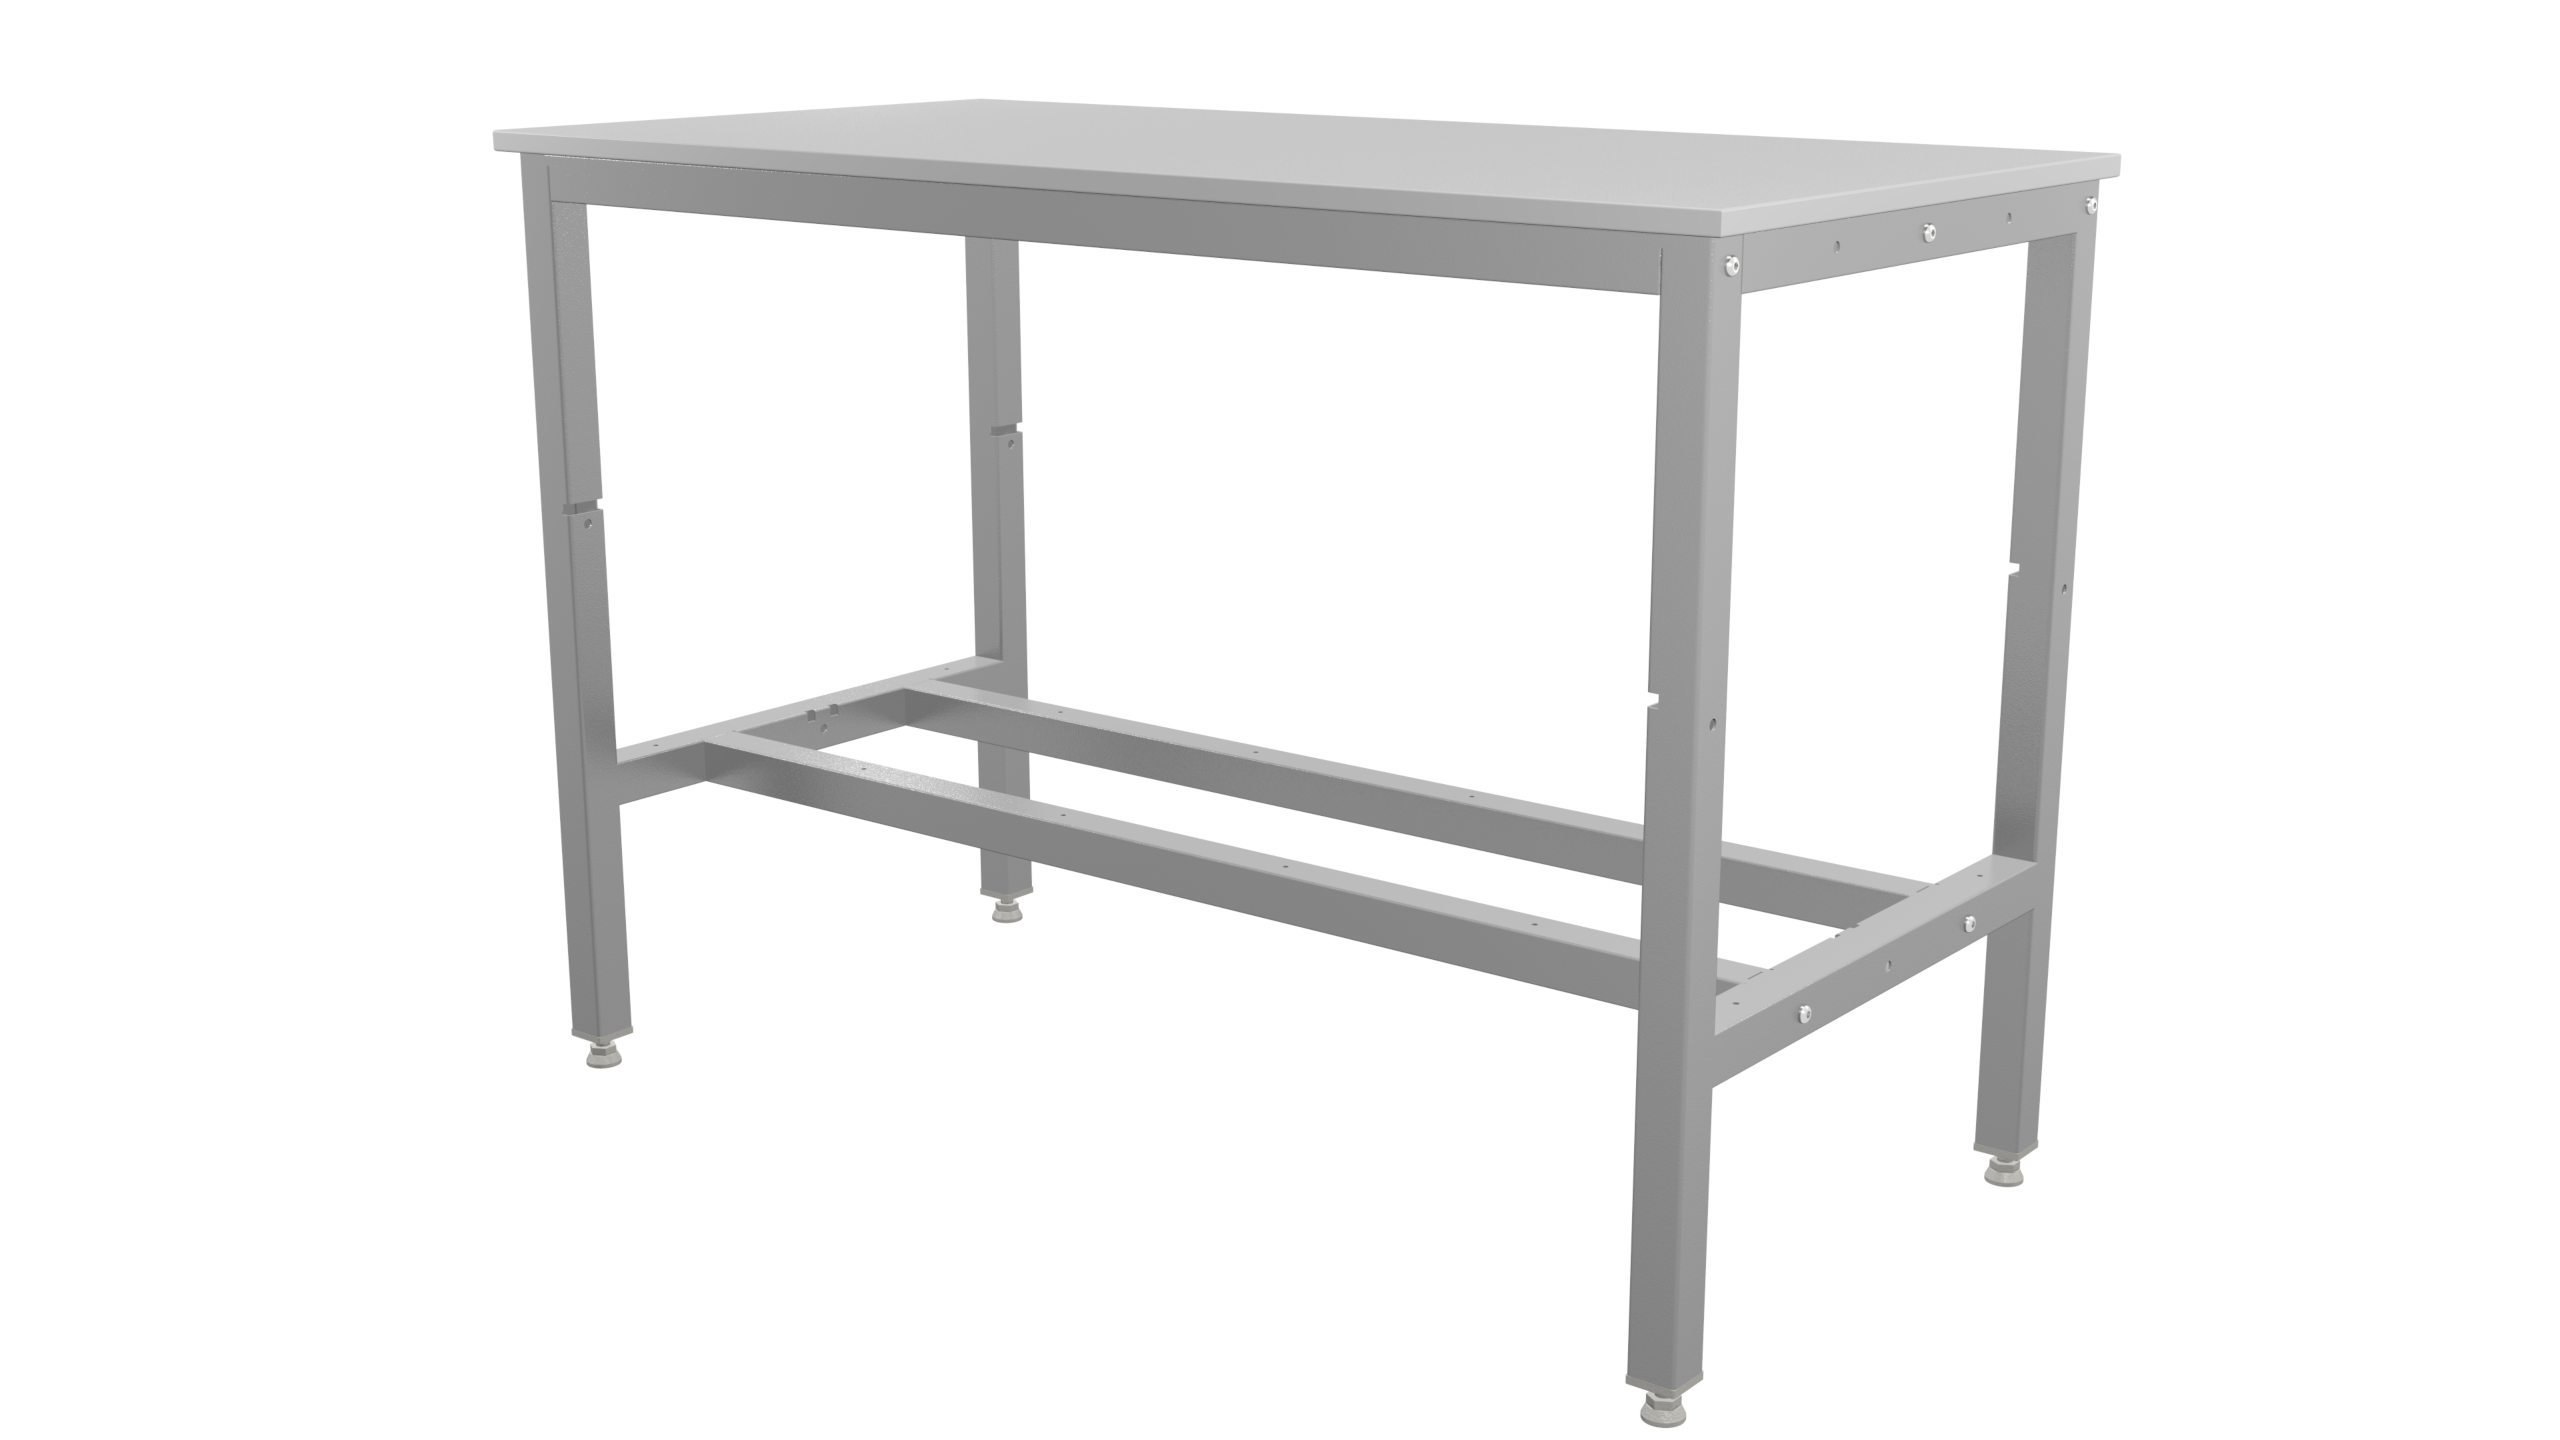 Super Self Assembly Heavy Duty Workbenches Ocoug Best Dining Table And Chair Ideas Images Ocougorg